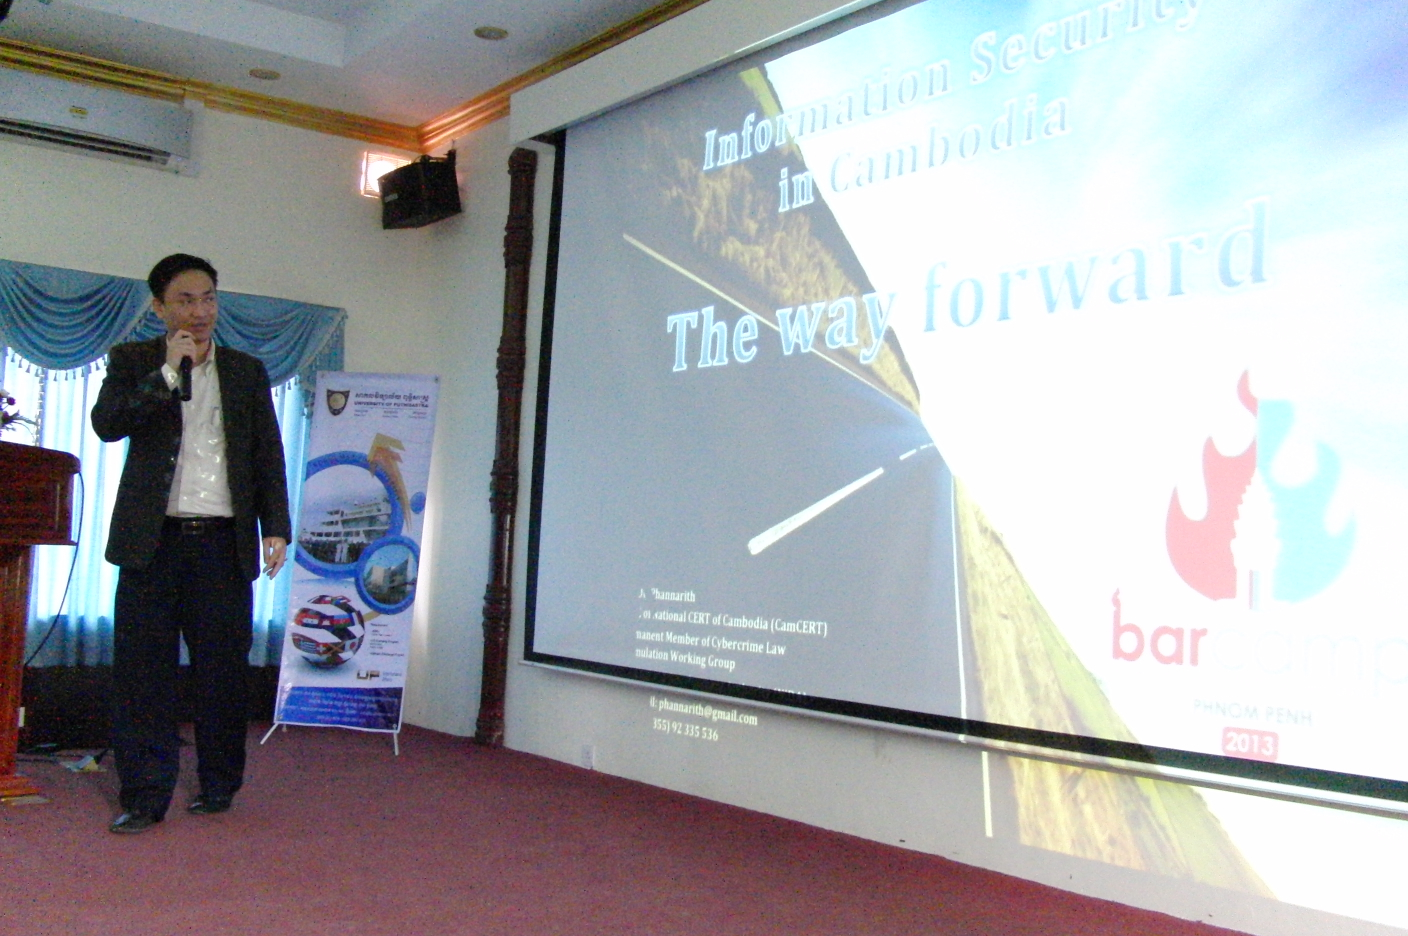 """Mr. OU Phannarith, Present about """"Information Security in Cambodia - The Way Forward"""""""